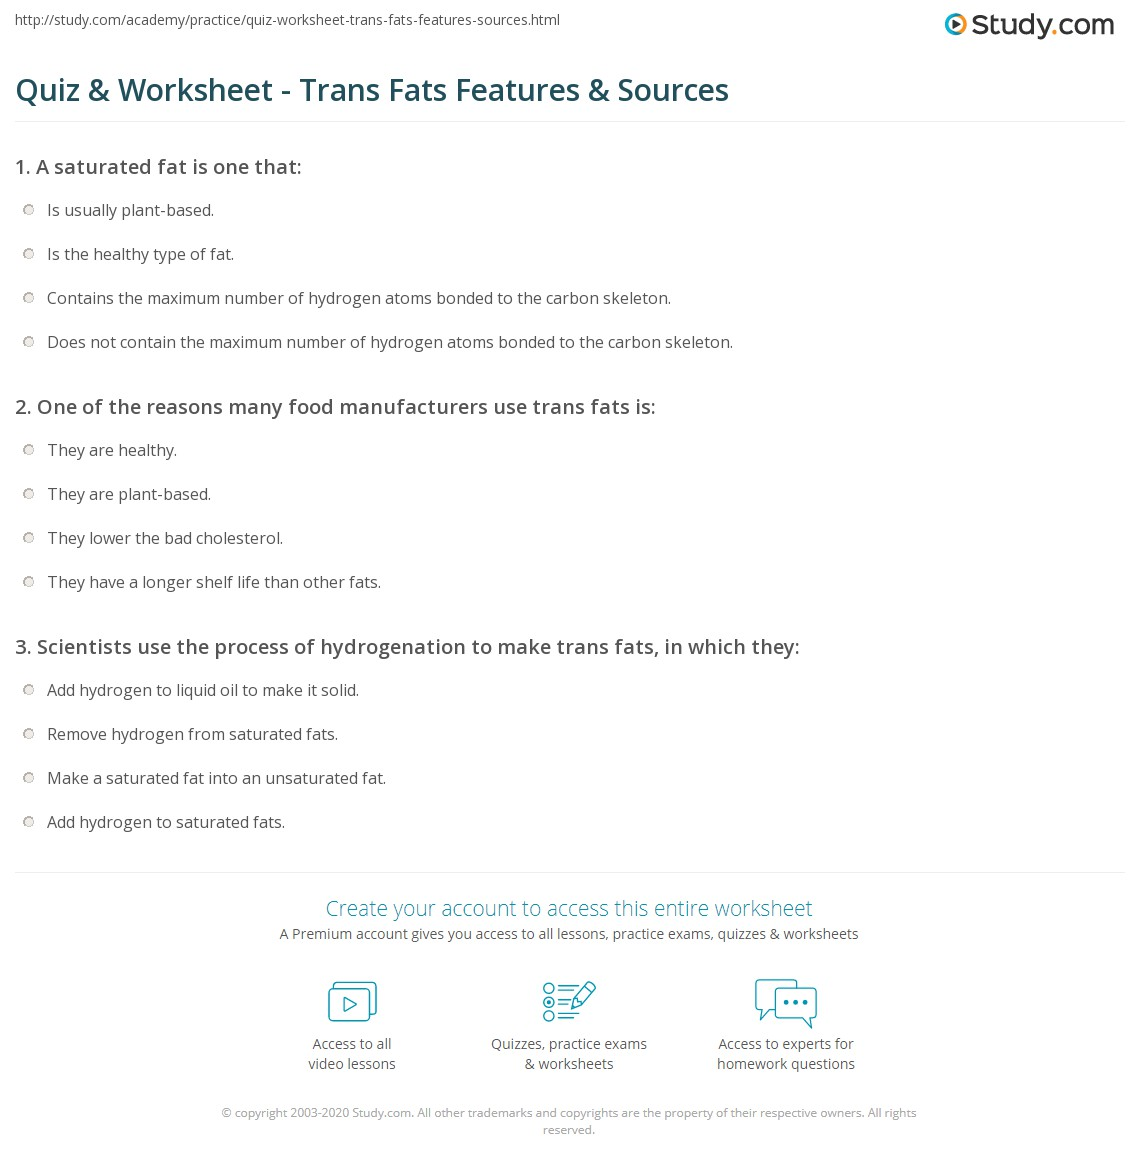 Quiz Worksheet Trans Fats Features Sources Study